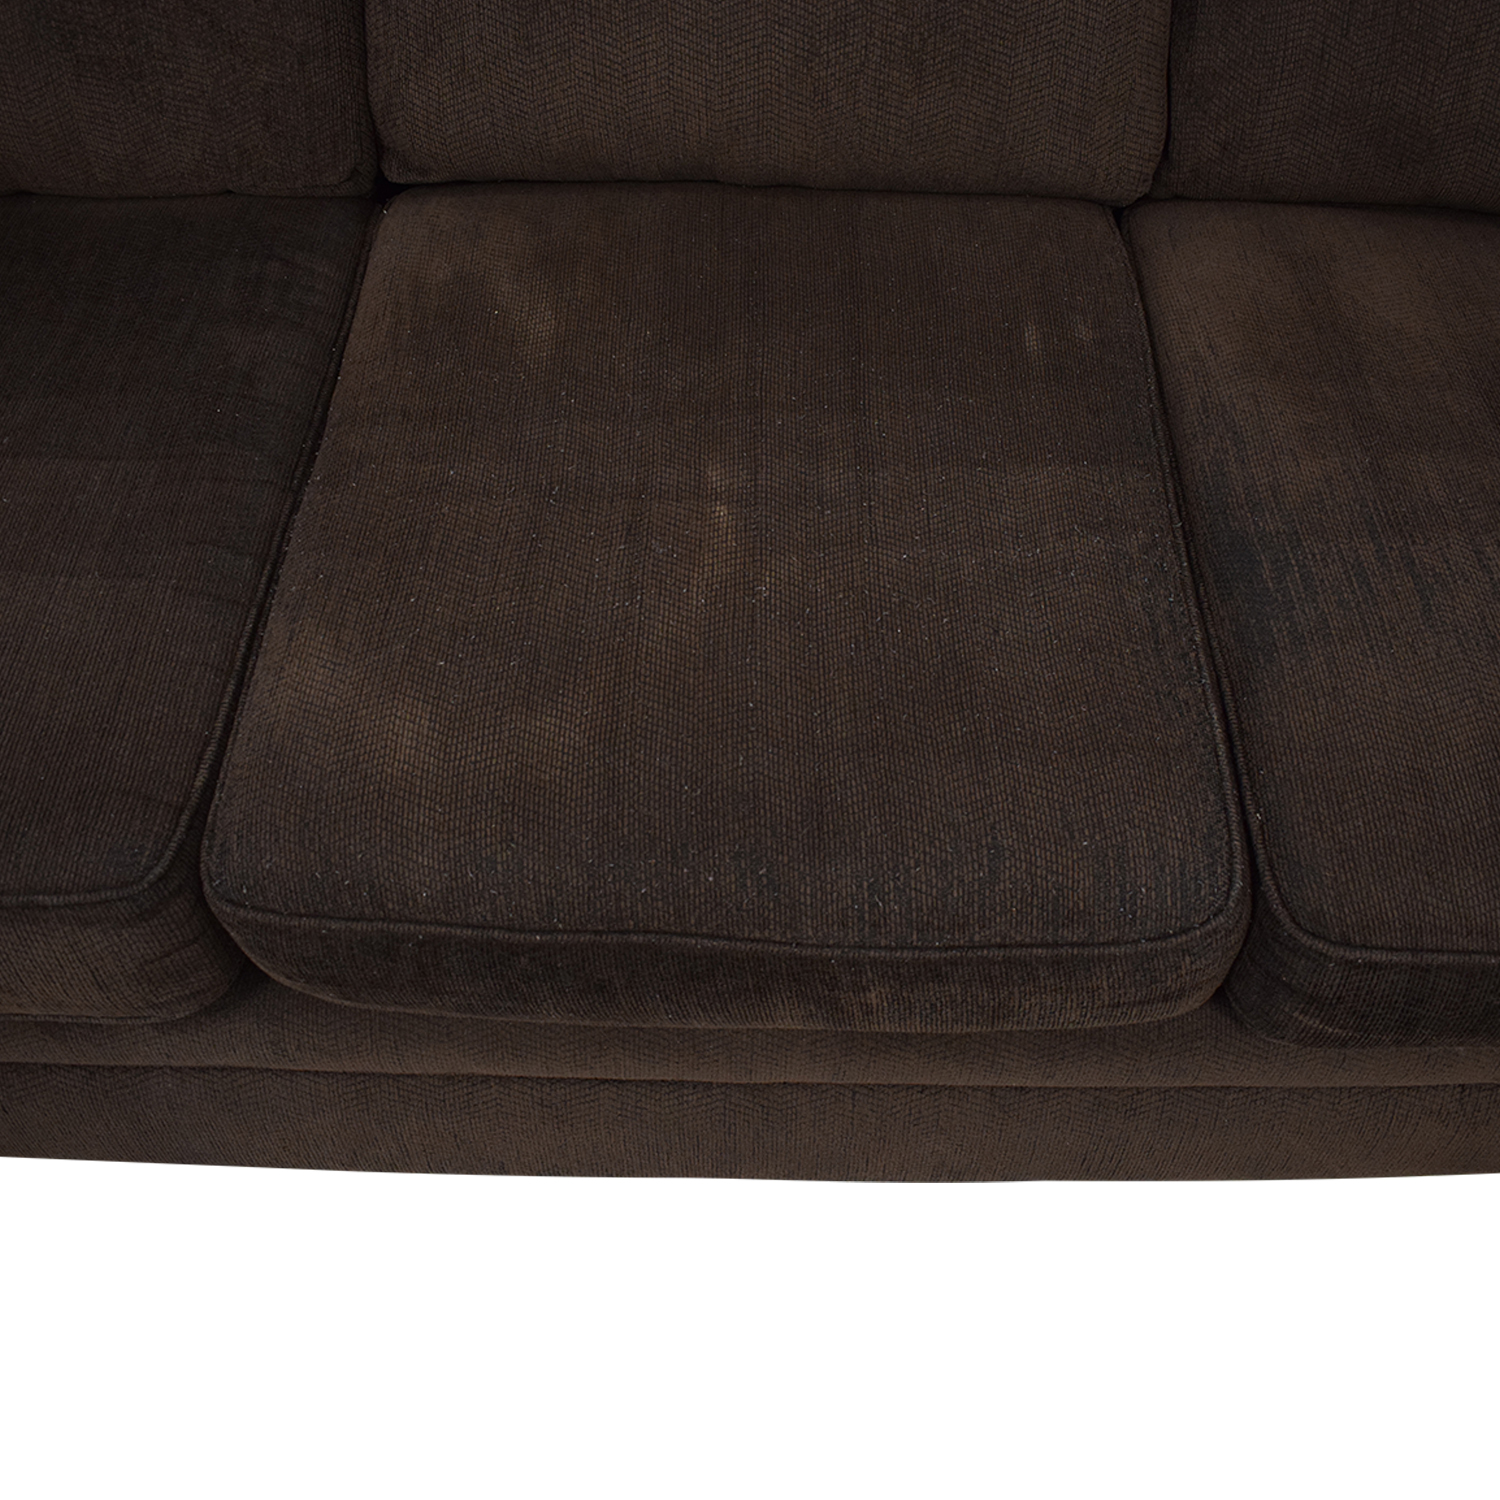 Surprising 74 Off Klaussner Klaussner Kazler K57000 Sofa And Ottoman Sofas Pdpeps Interior Chair Design Pdpepsorg